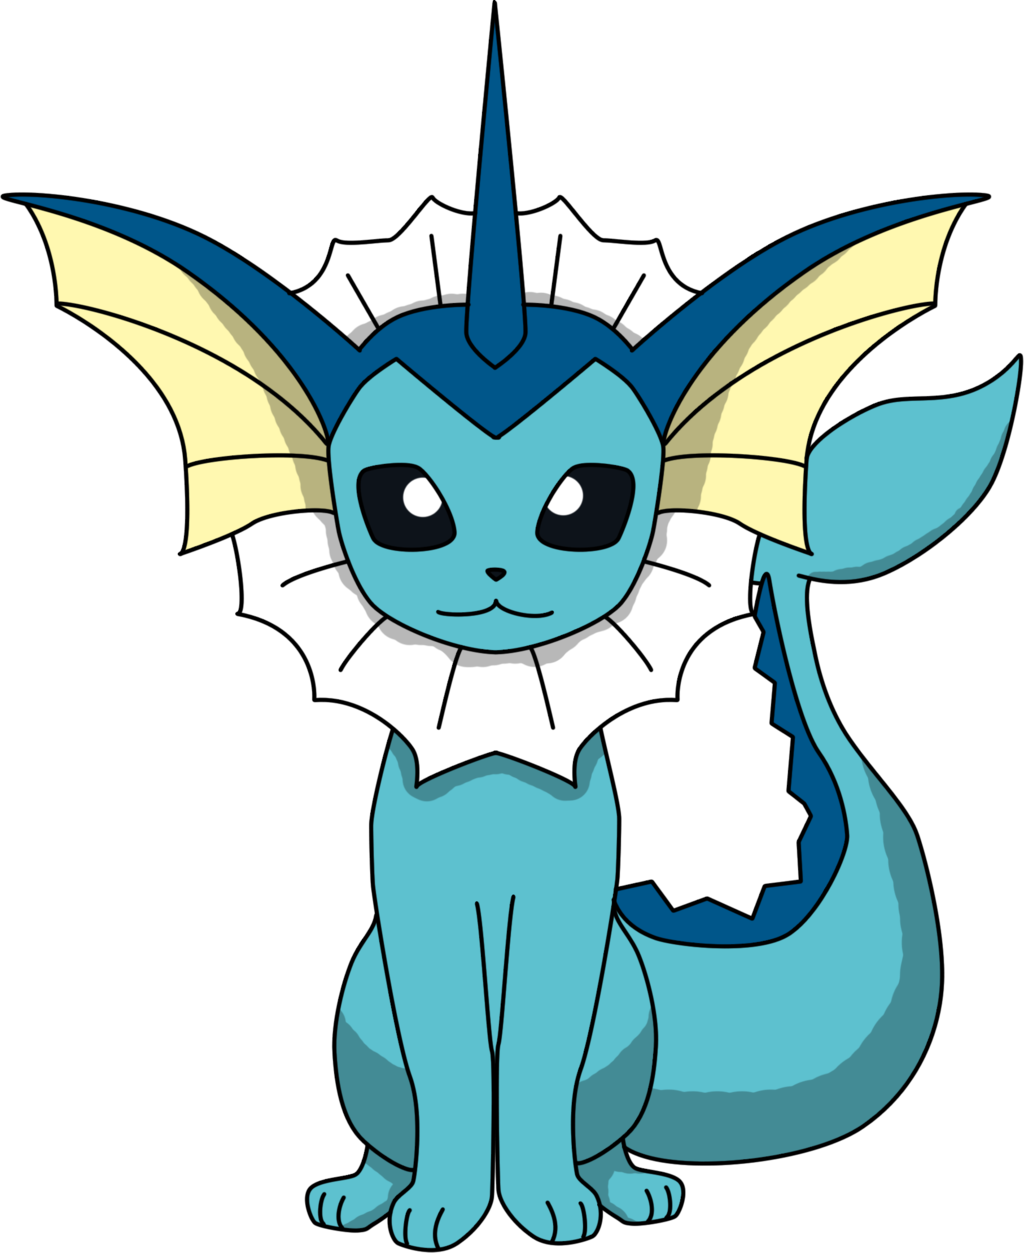 Eeveelution drawing vaporeon. Sitting png by proteusiii